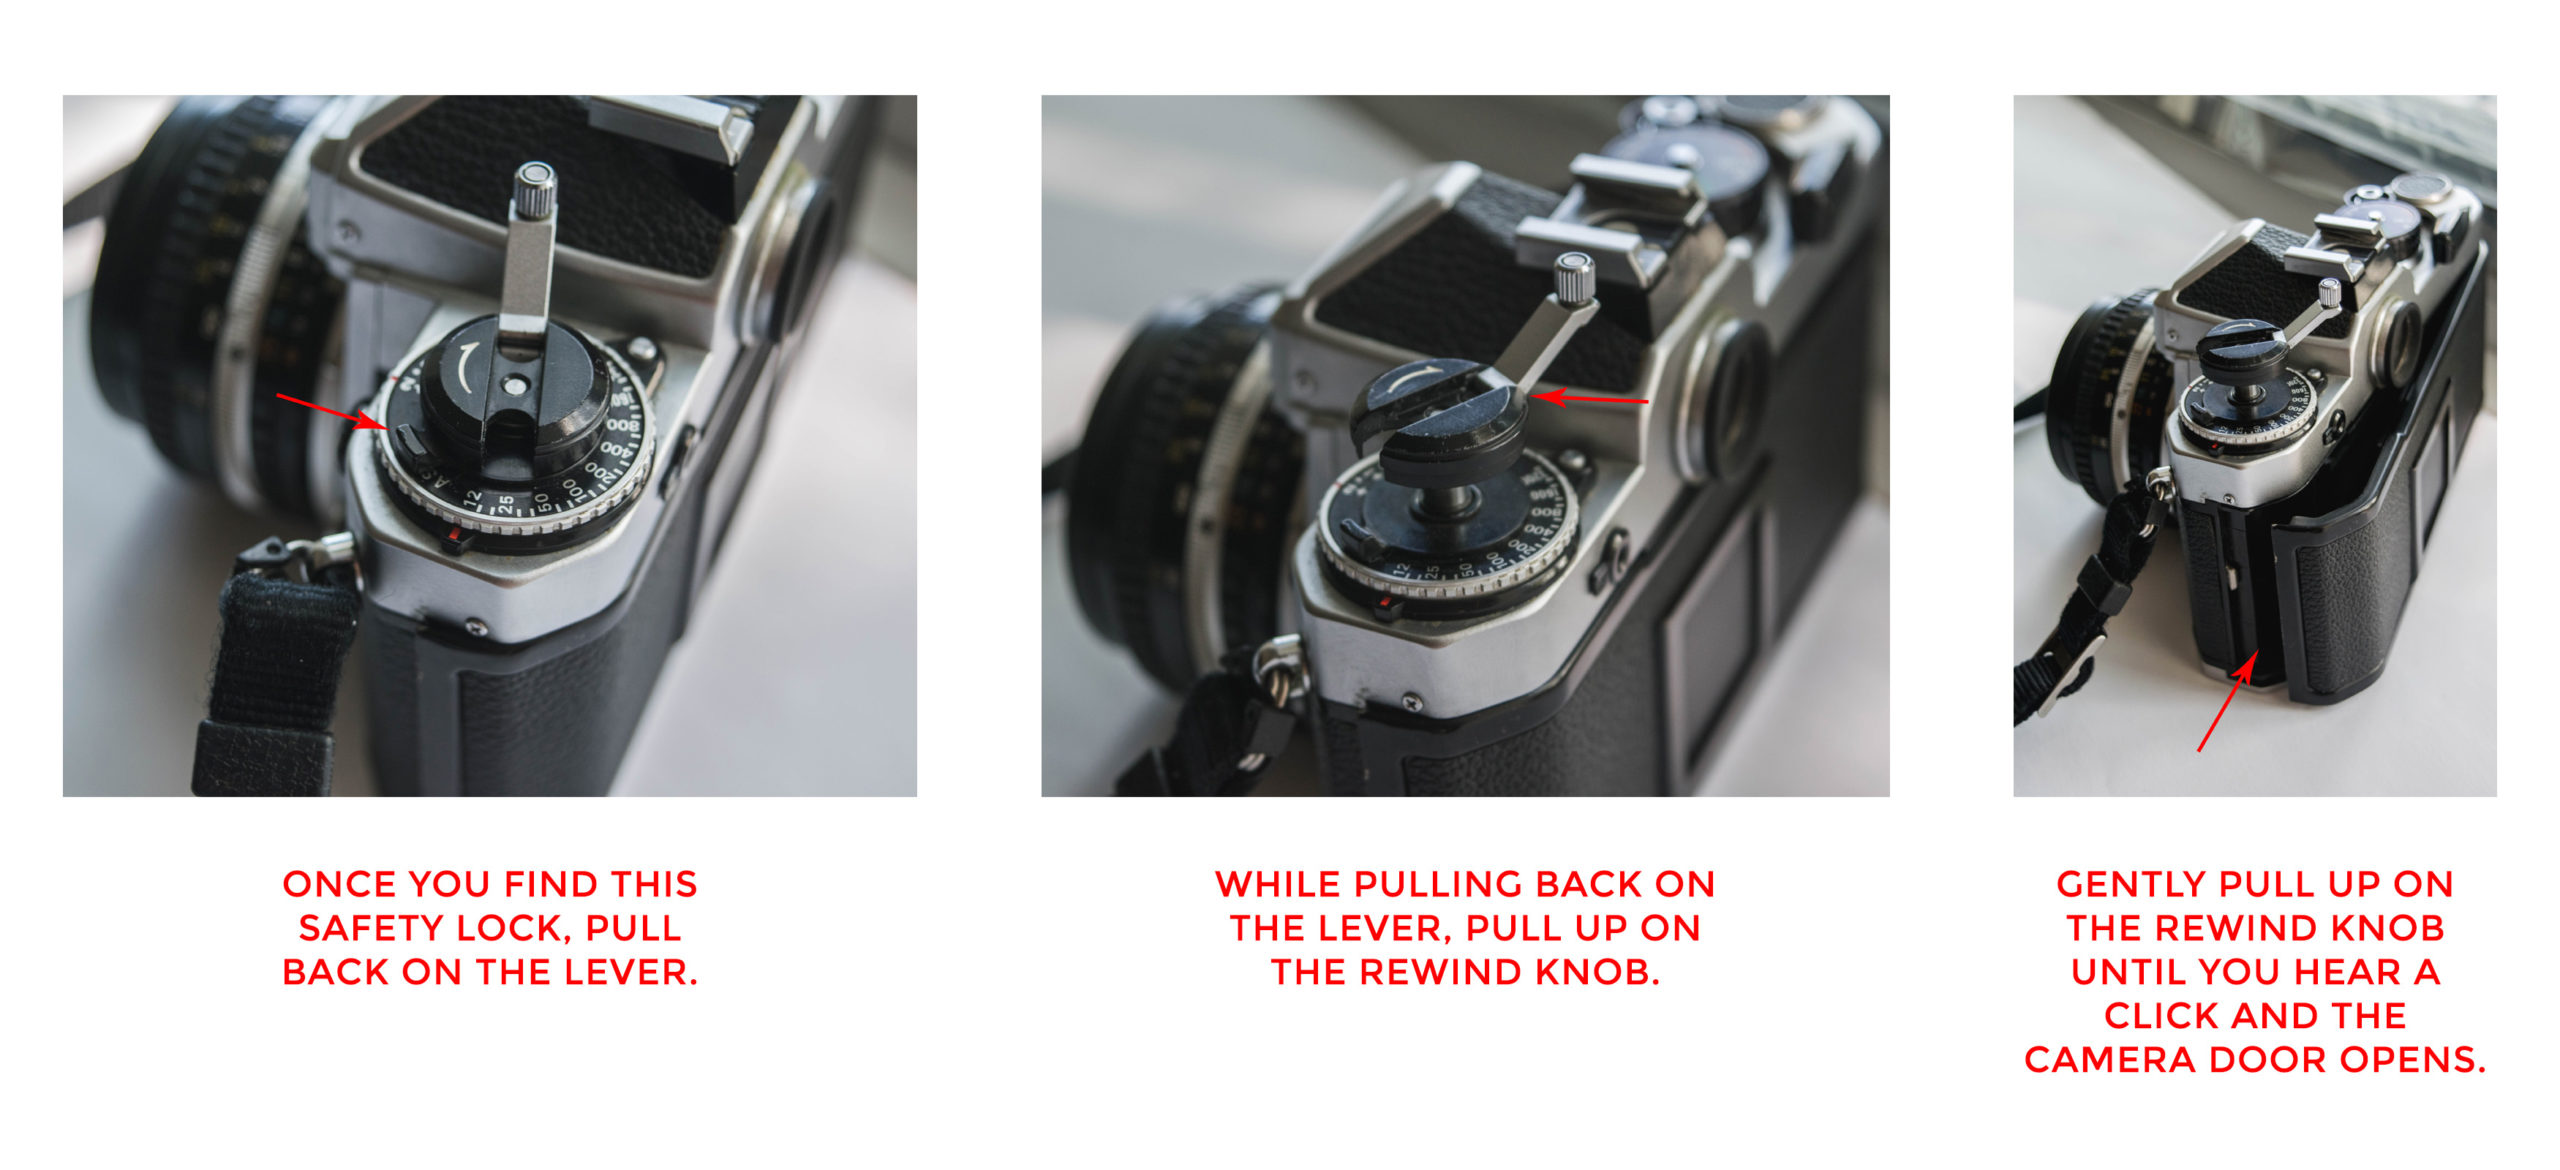 Open Back Diagram - How to Load Film into a 35mm Film Camera - FilterGrade Blog